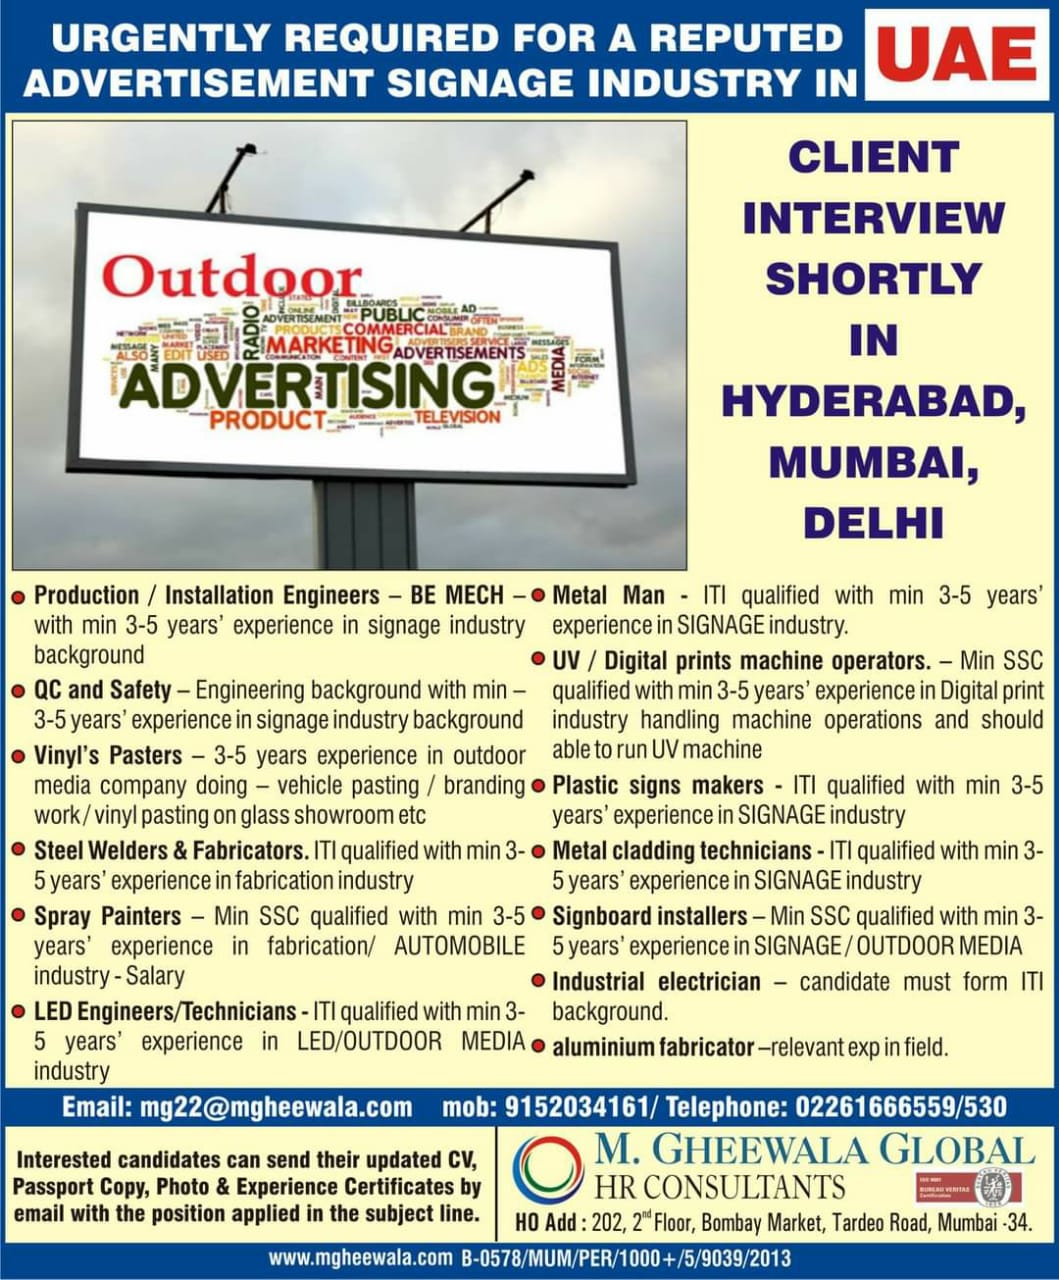 URGENTLY REQUIRED FOR A ADVERTISEMENT SIGNAGE INDUSTRY-UAE